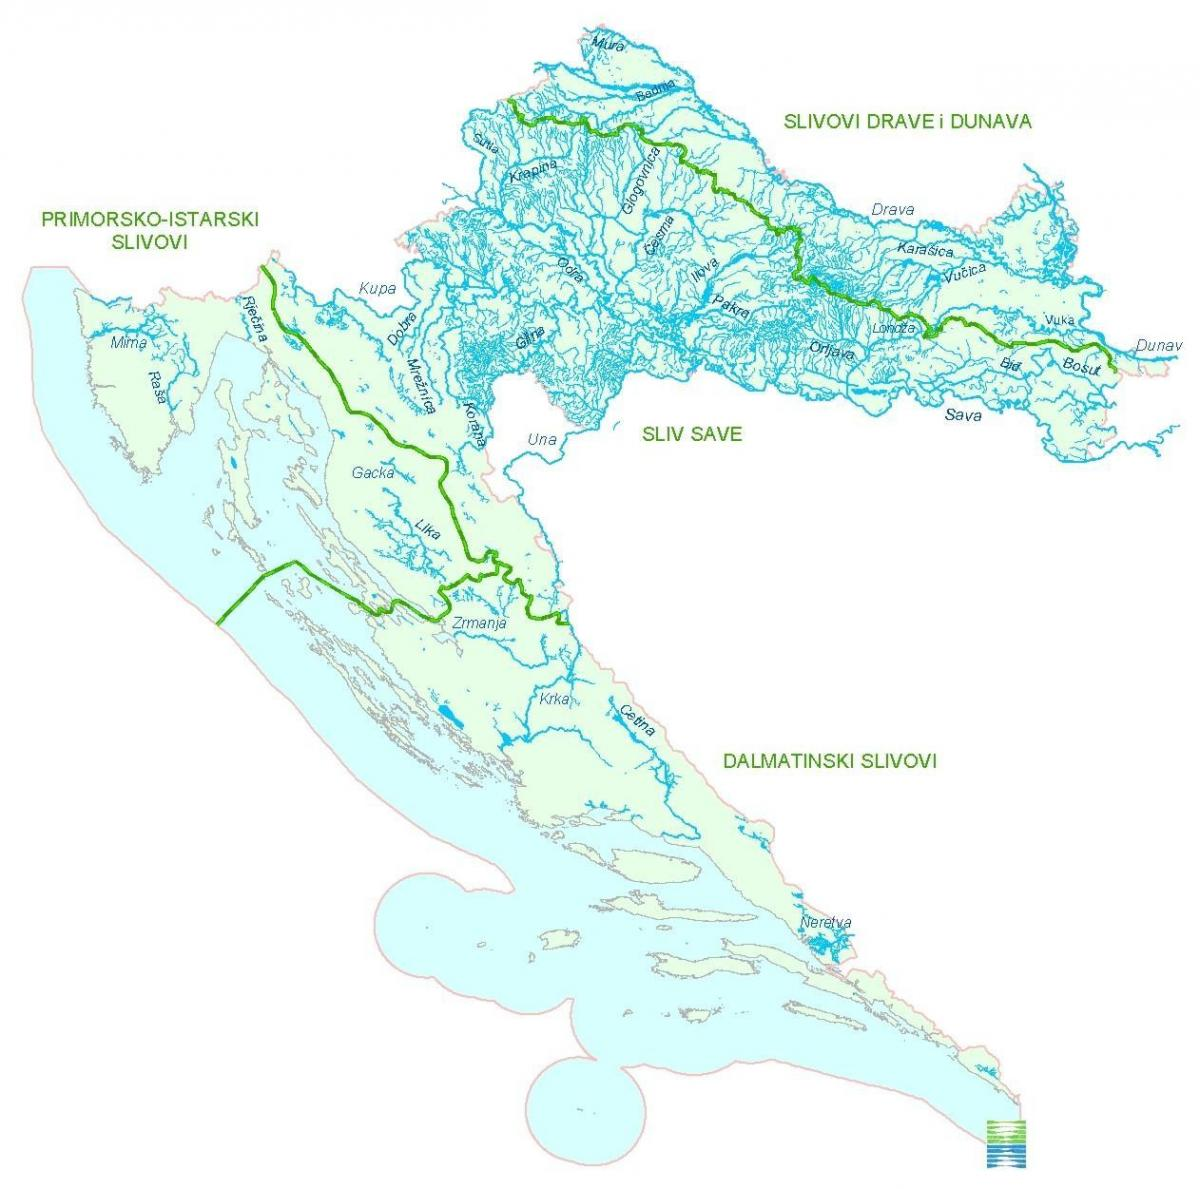 Rivers in Croatia map